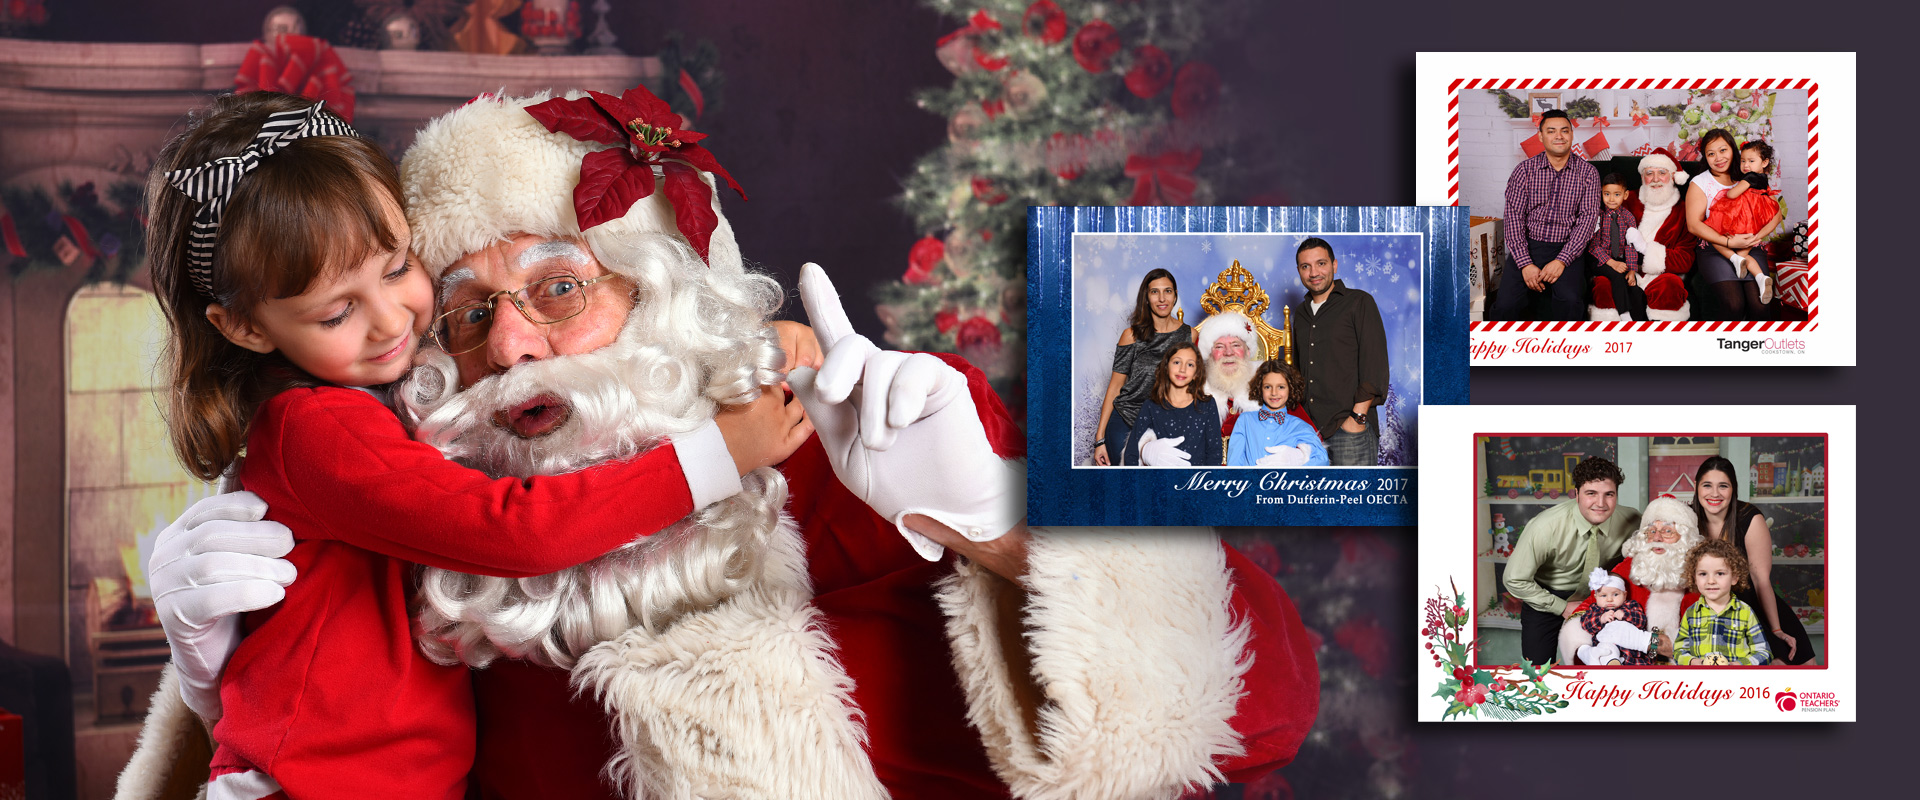 Brunch with Santa photos